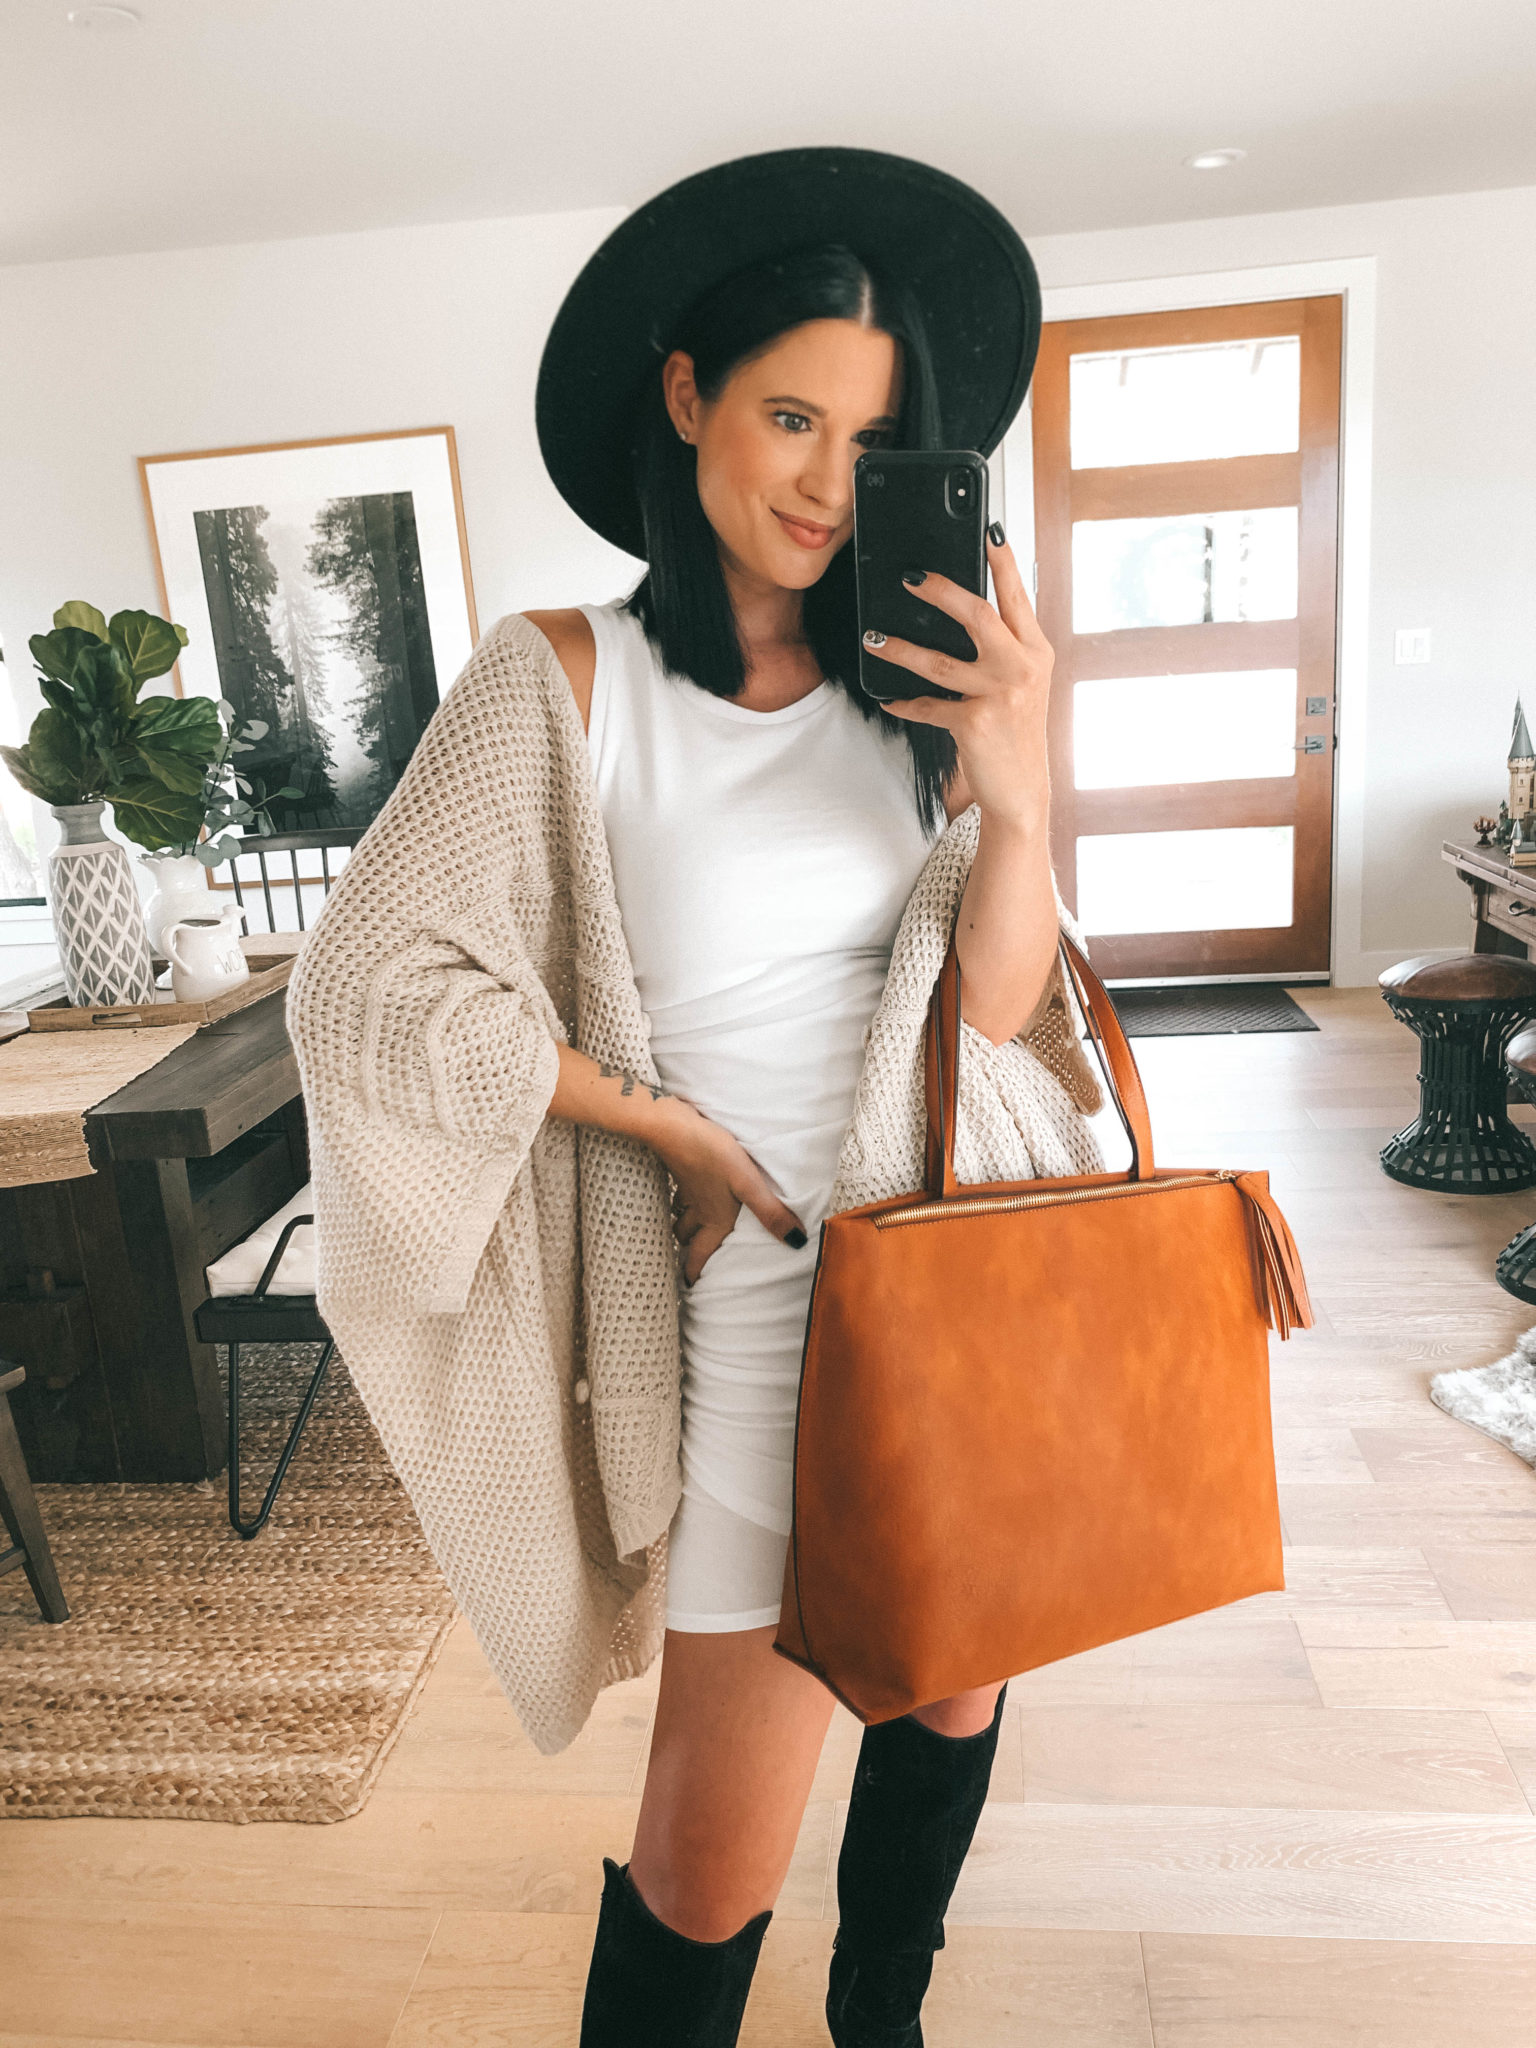 Must Have Sole Society Fall Staples by popular Austin fashion blog, Dressed to Kill: image of a woman wearing a Nordstrom Leith rouched body-con dress, Sole Society Paloma wedge boot, Sole Society Knit Detail Wrap, and holding a Sole Society Wallis Tote.